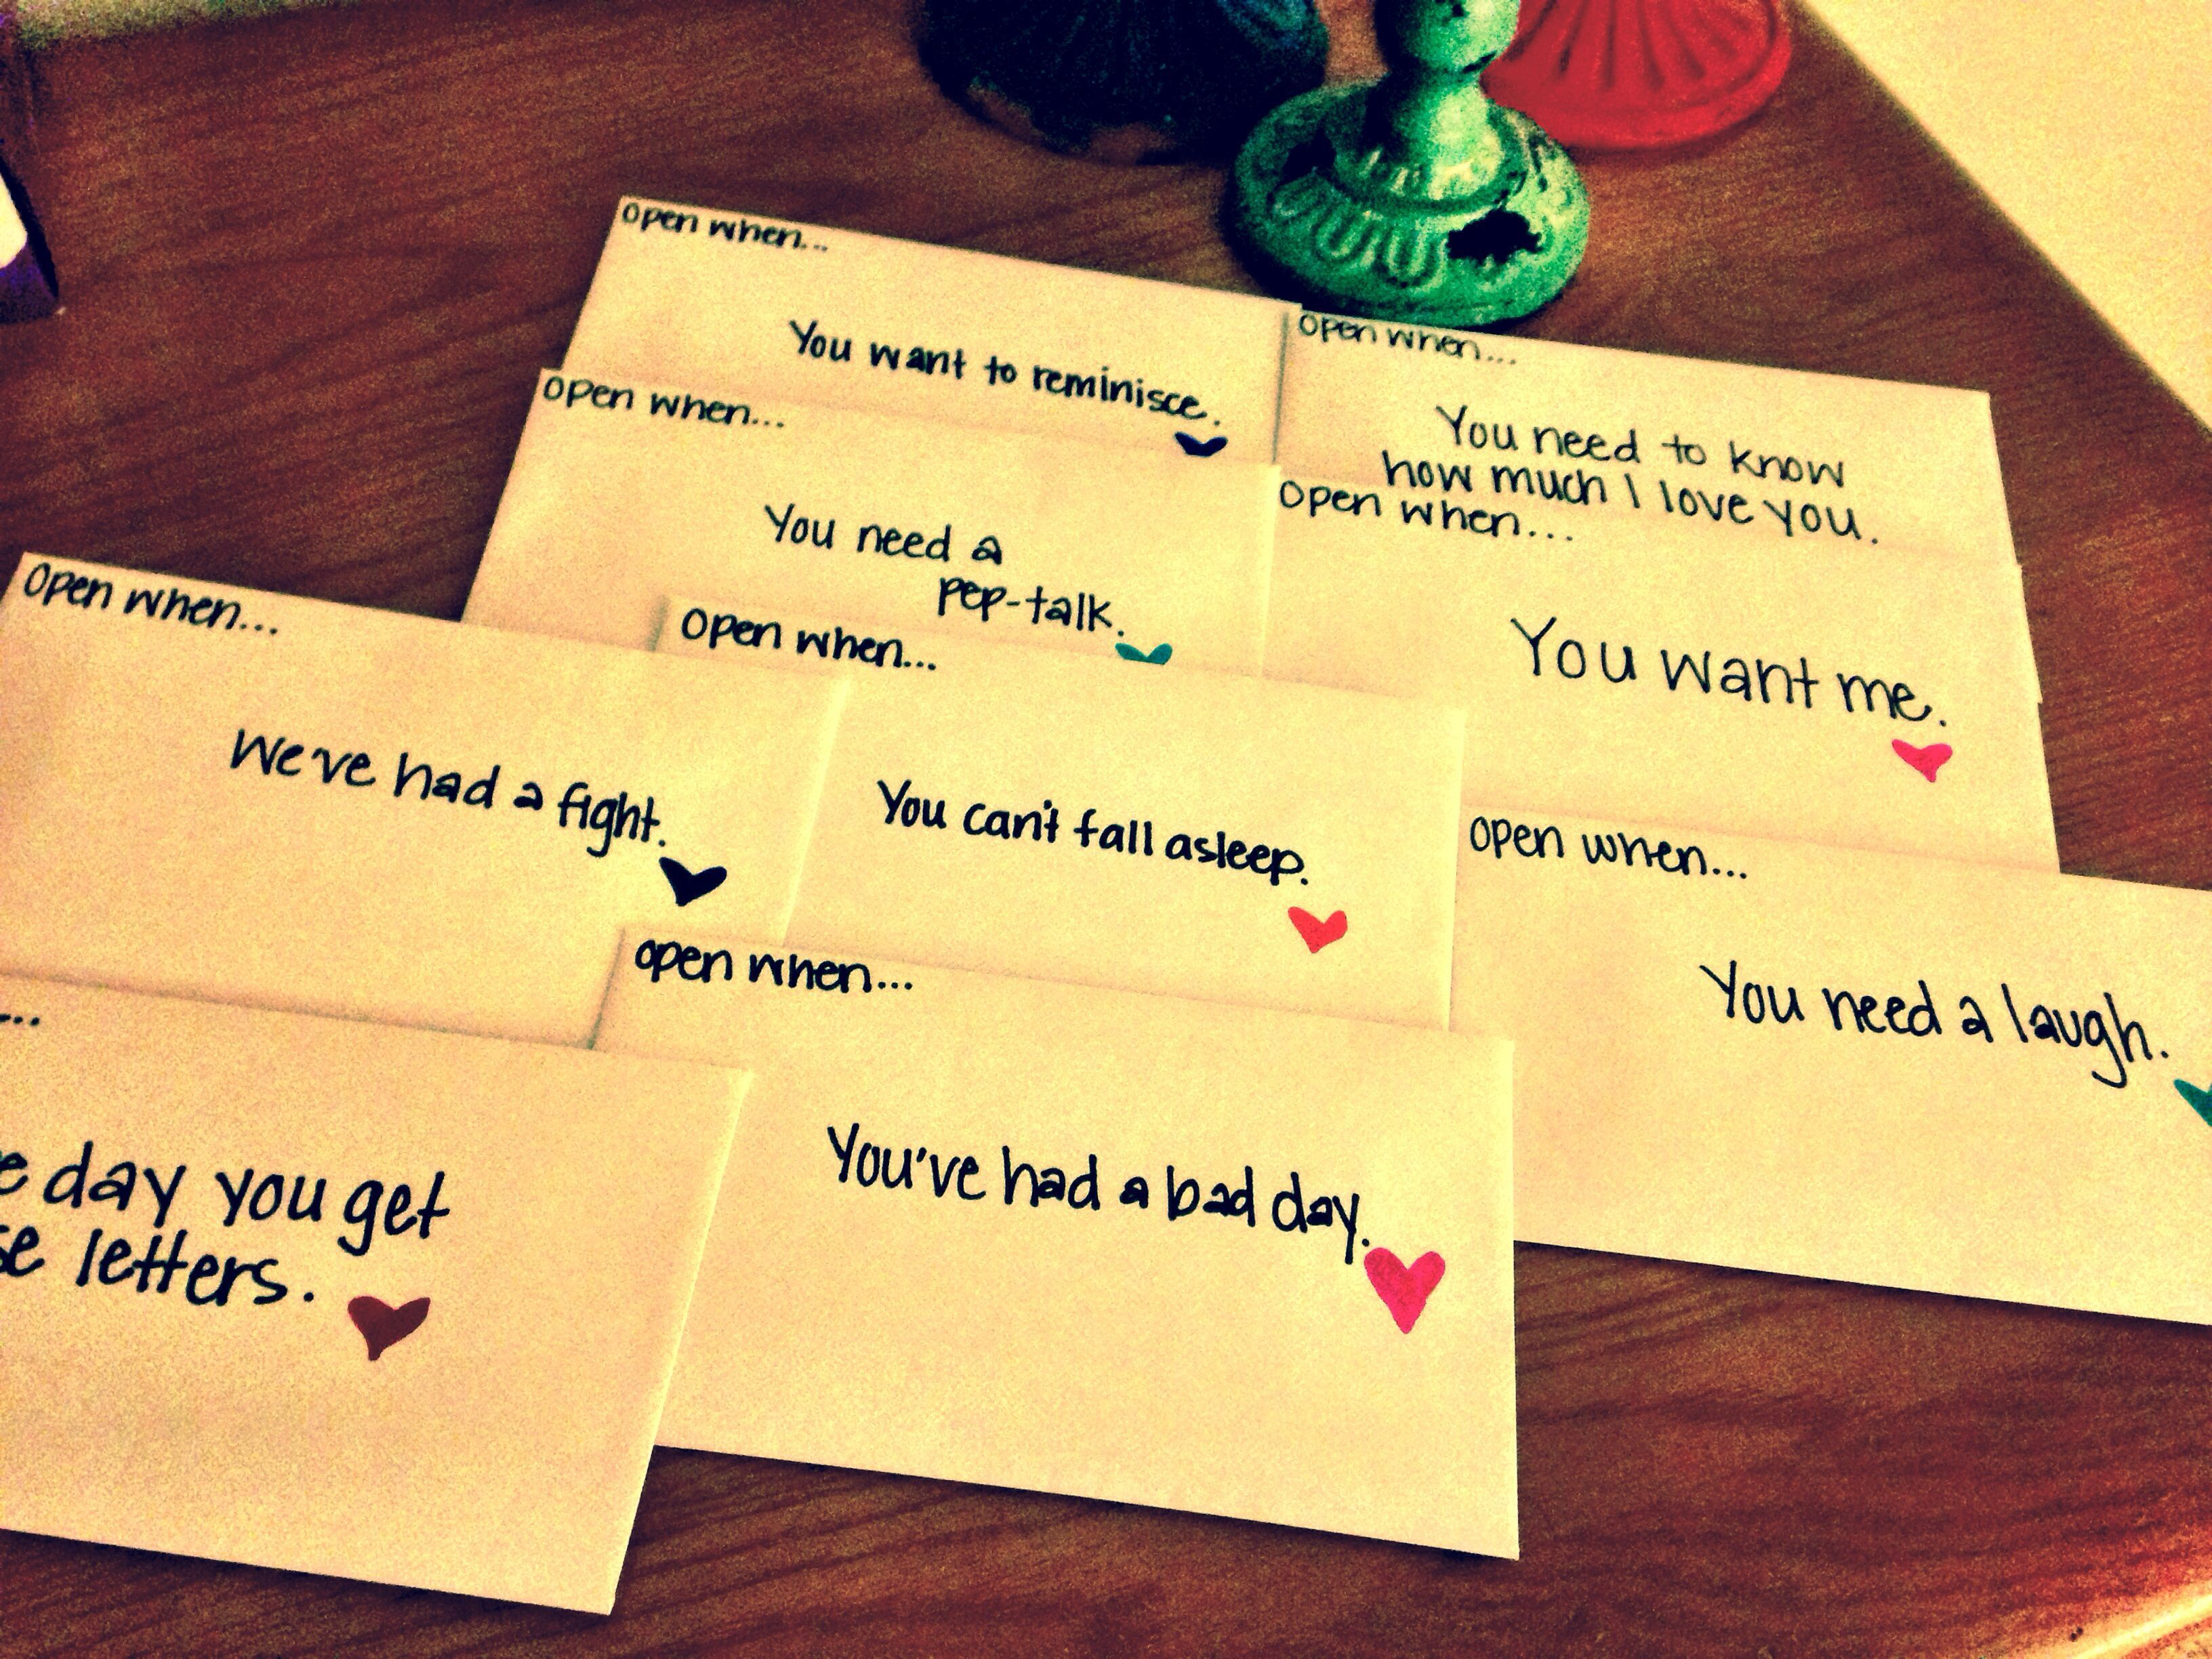 Open when...letters to loved ones for different feelings